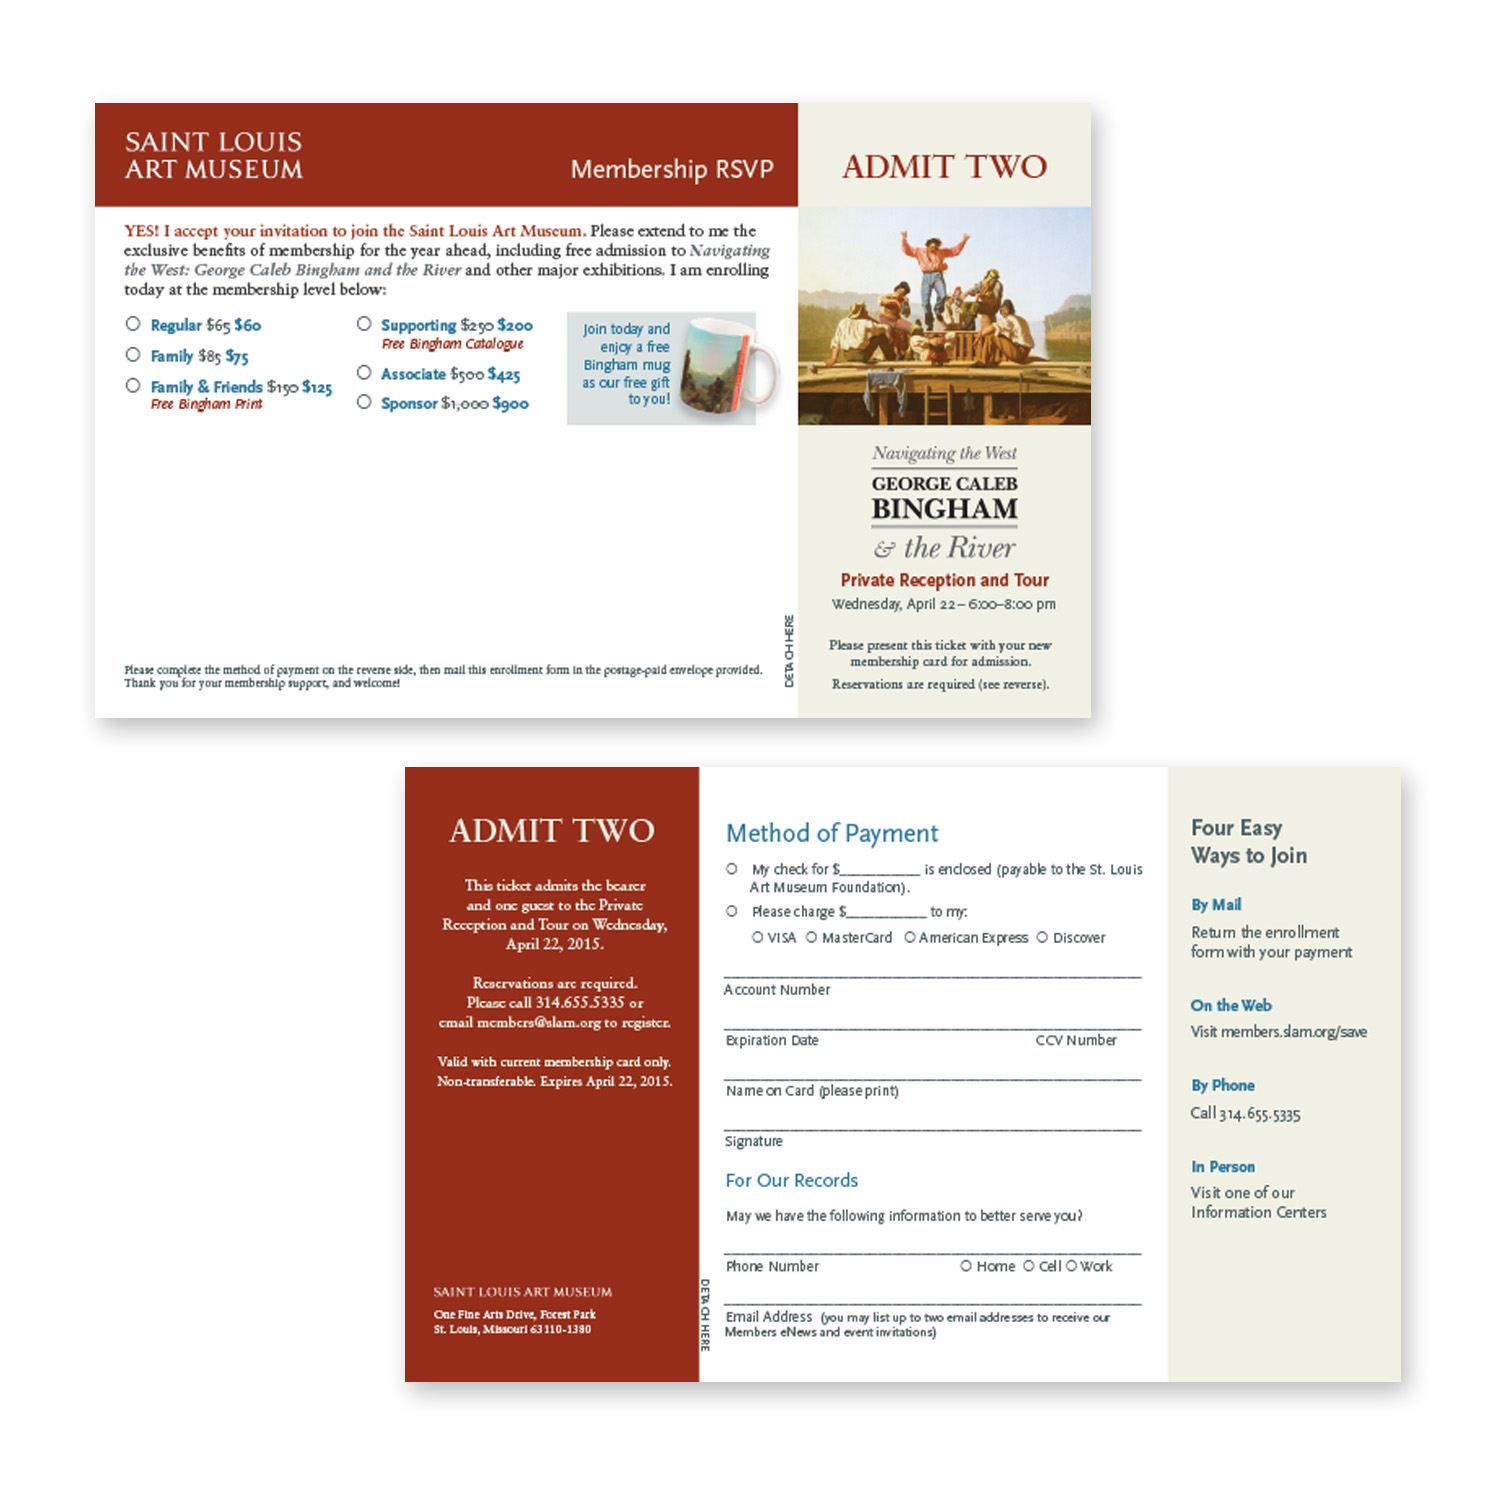 order form and voucher